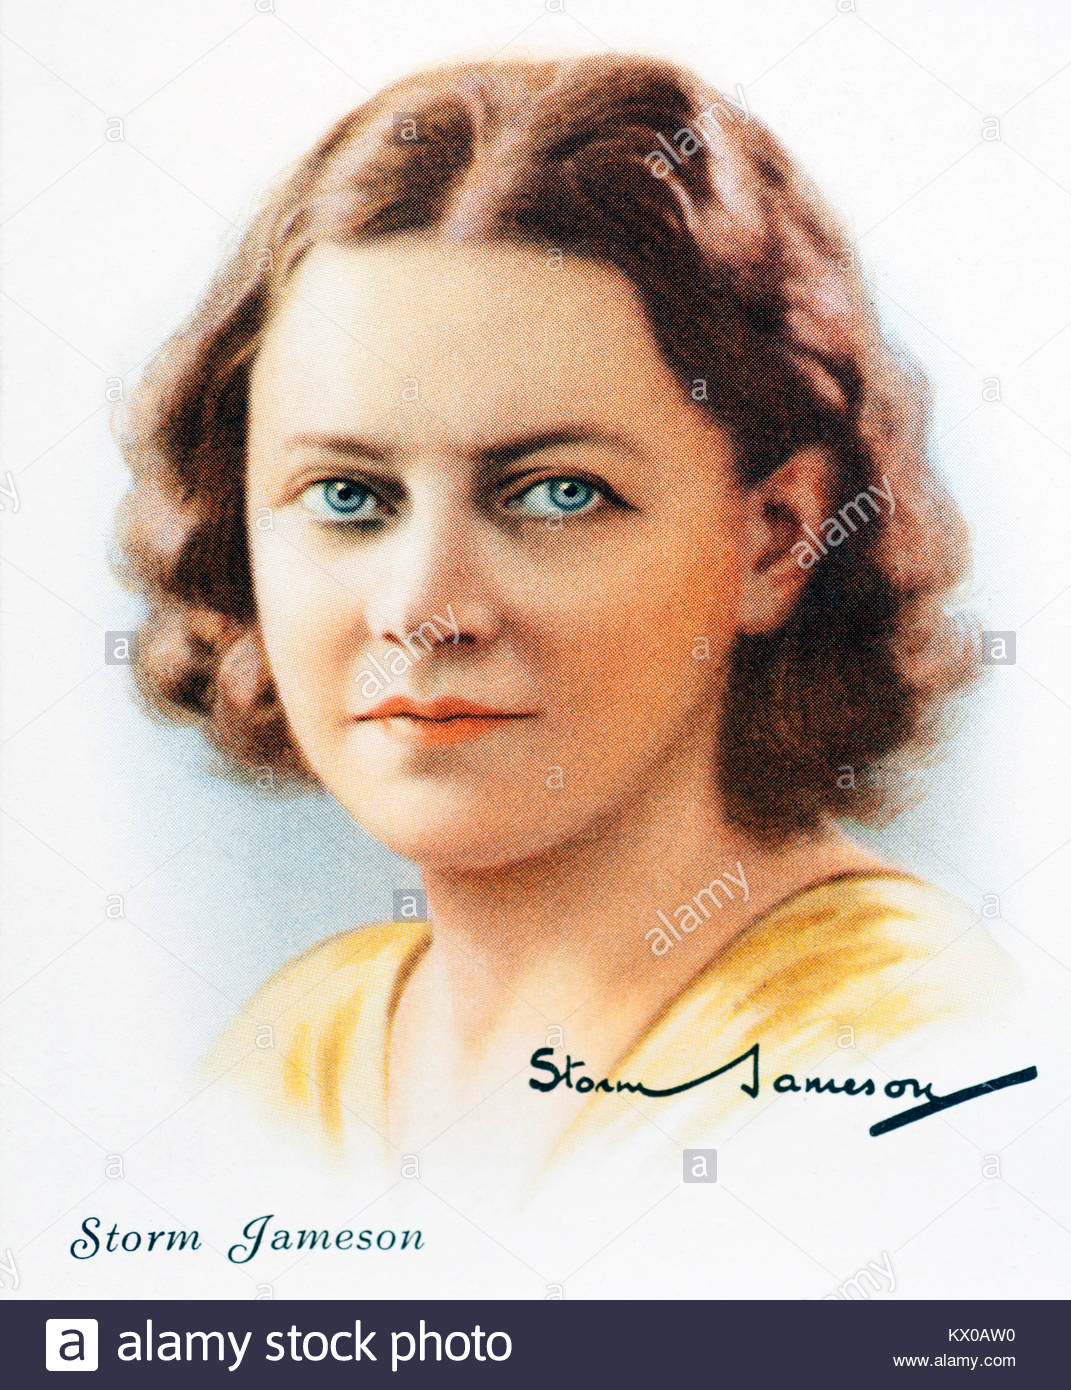 Storm Jameson was an English journalist and author 1891 – 1986 - Stock Image